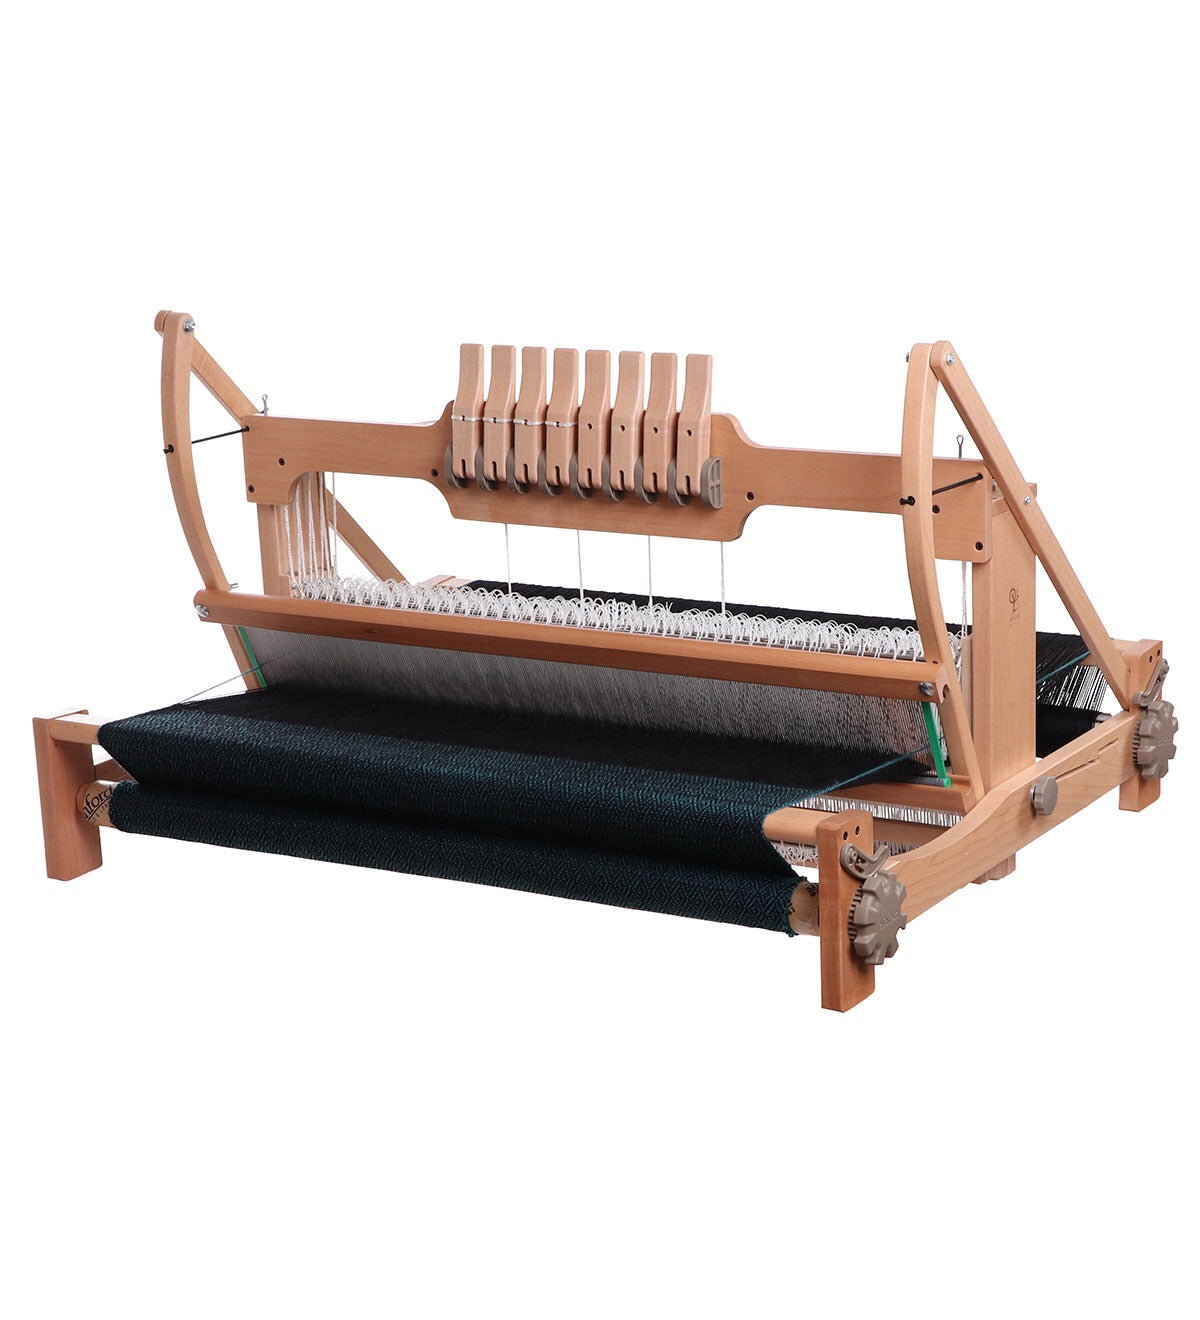 Ashford 8 Shaft Table Loom